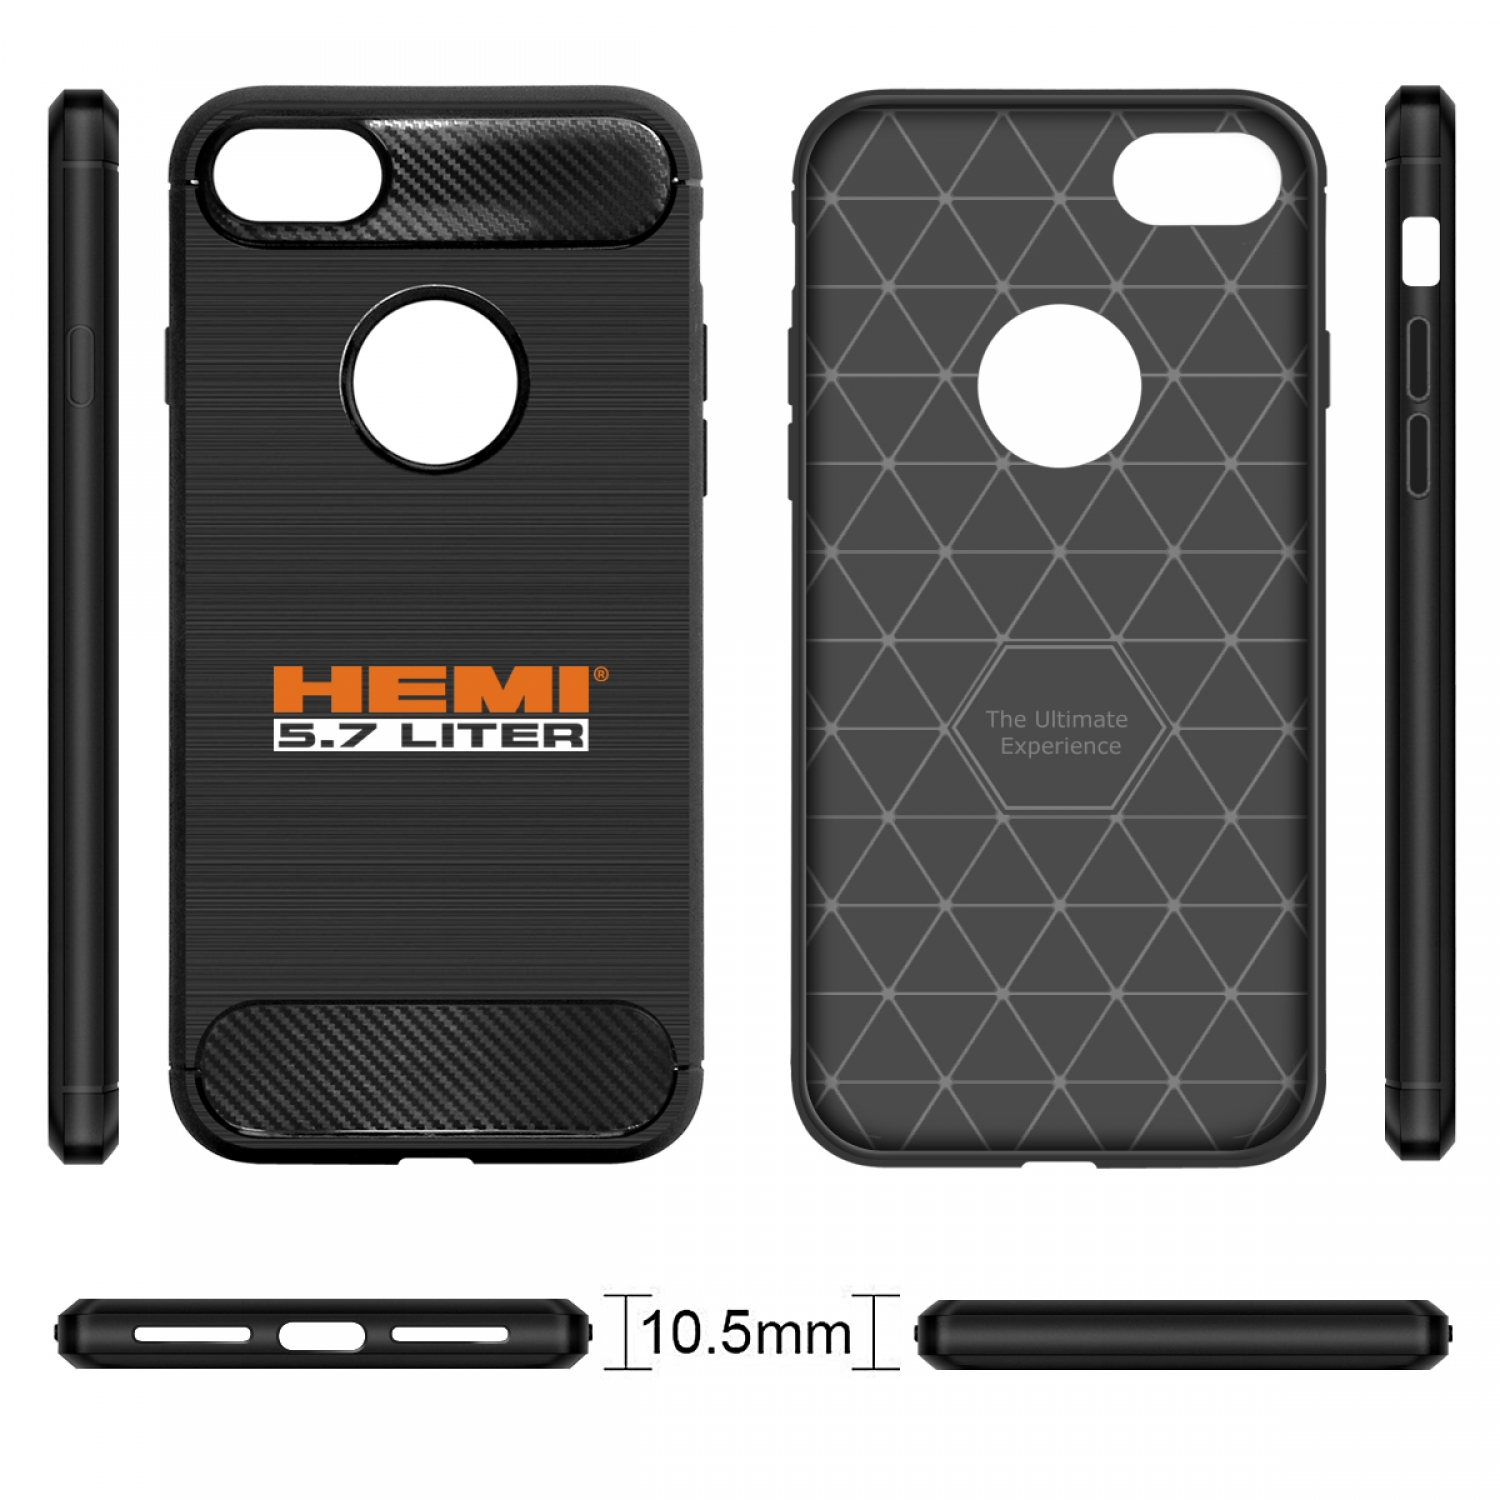 iPhone 7 Case, HEMI 5.7 Liter Black TPU Shockproof Carbon Fiber Textures Cell Phone Case